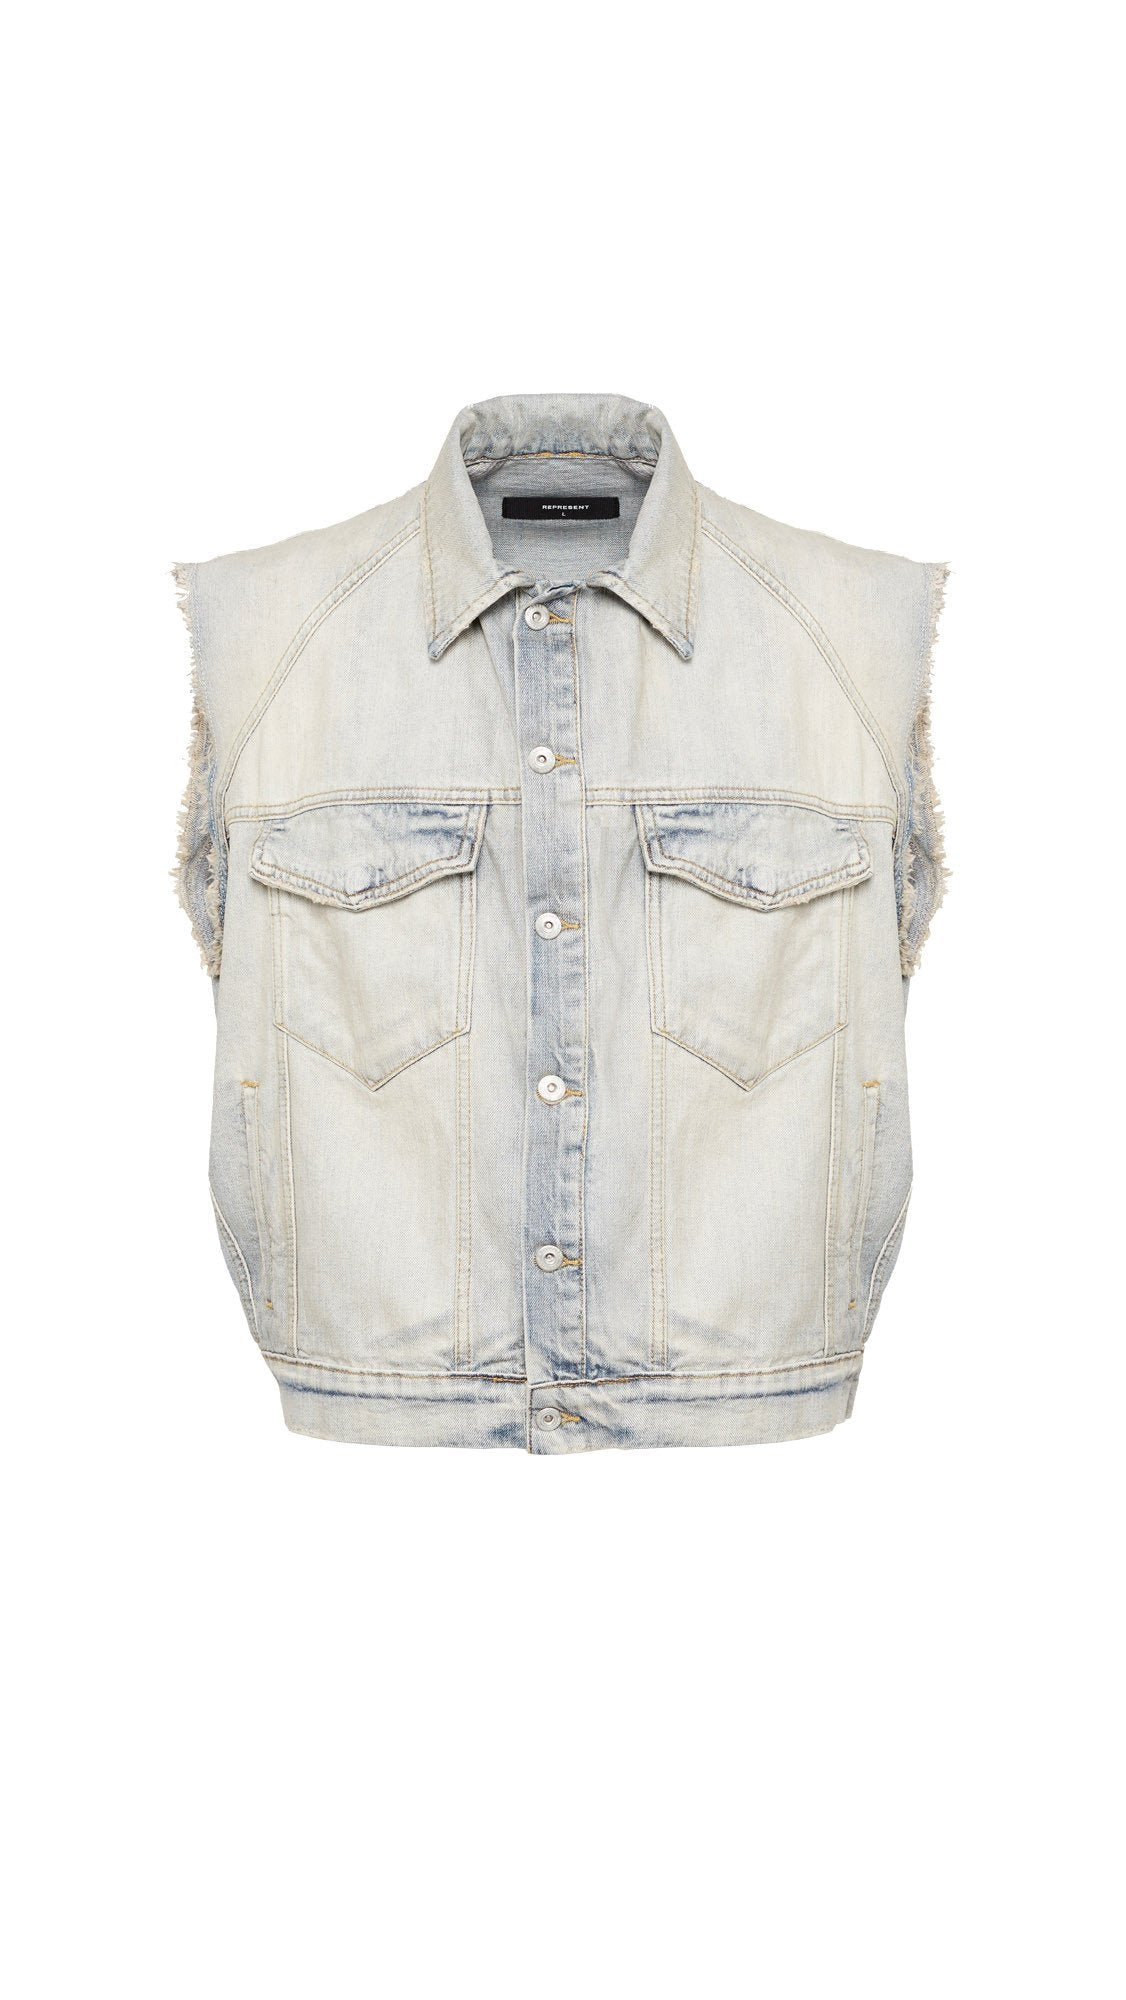 Sleeveless Selvedge Denim Jacket - Pale Blue